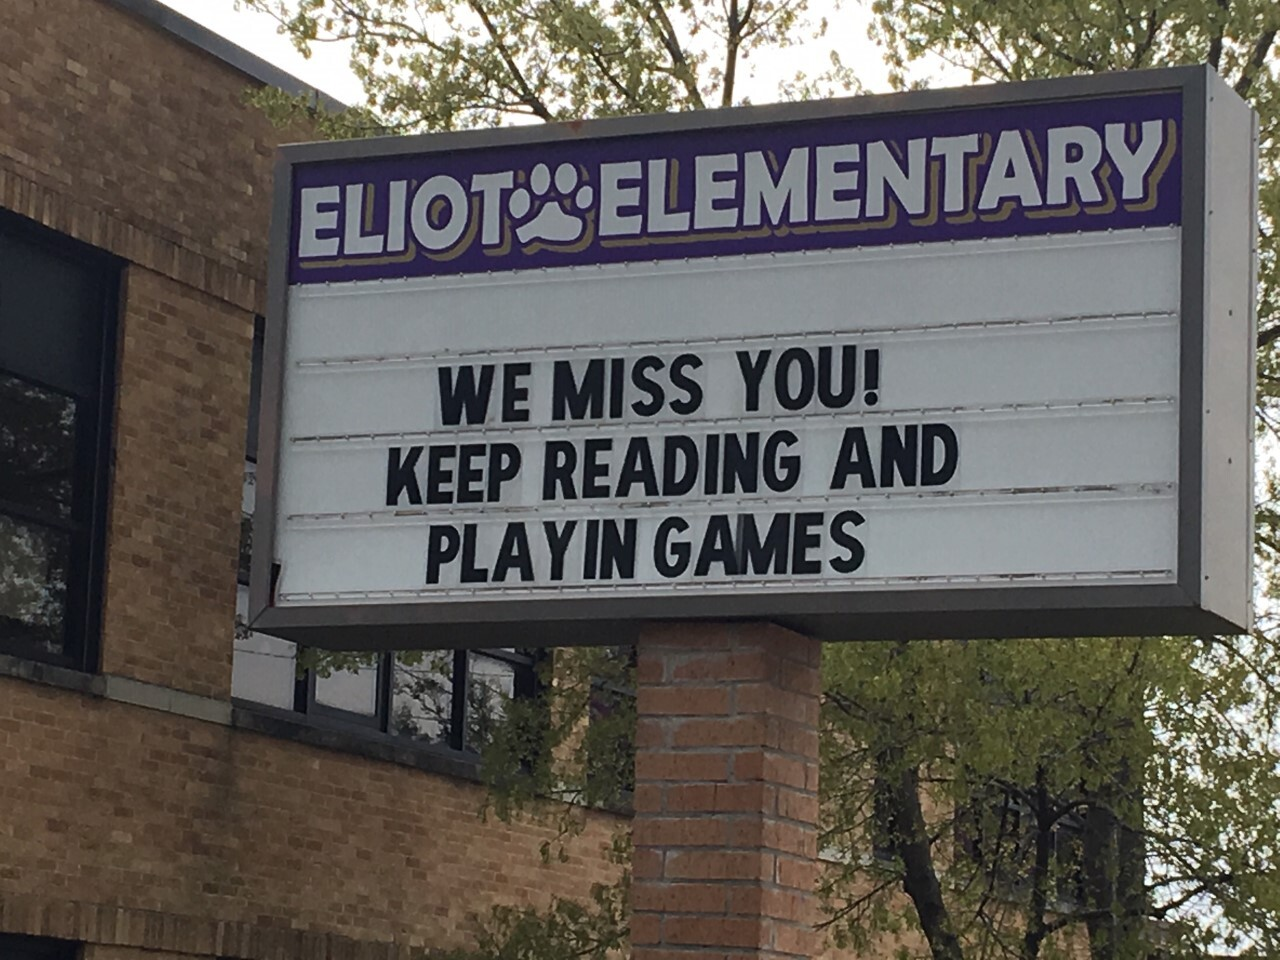 Eliot Elementary - We Miss You! sign